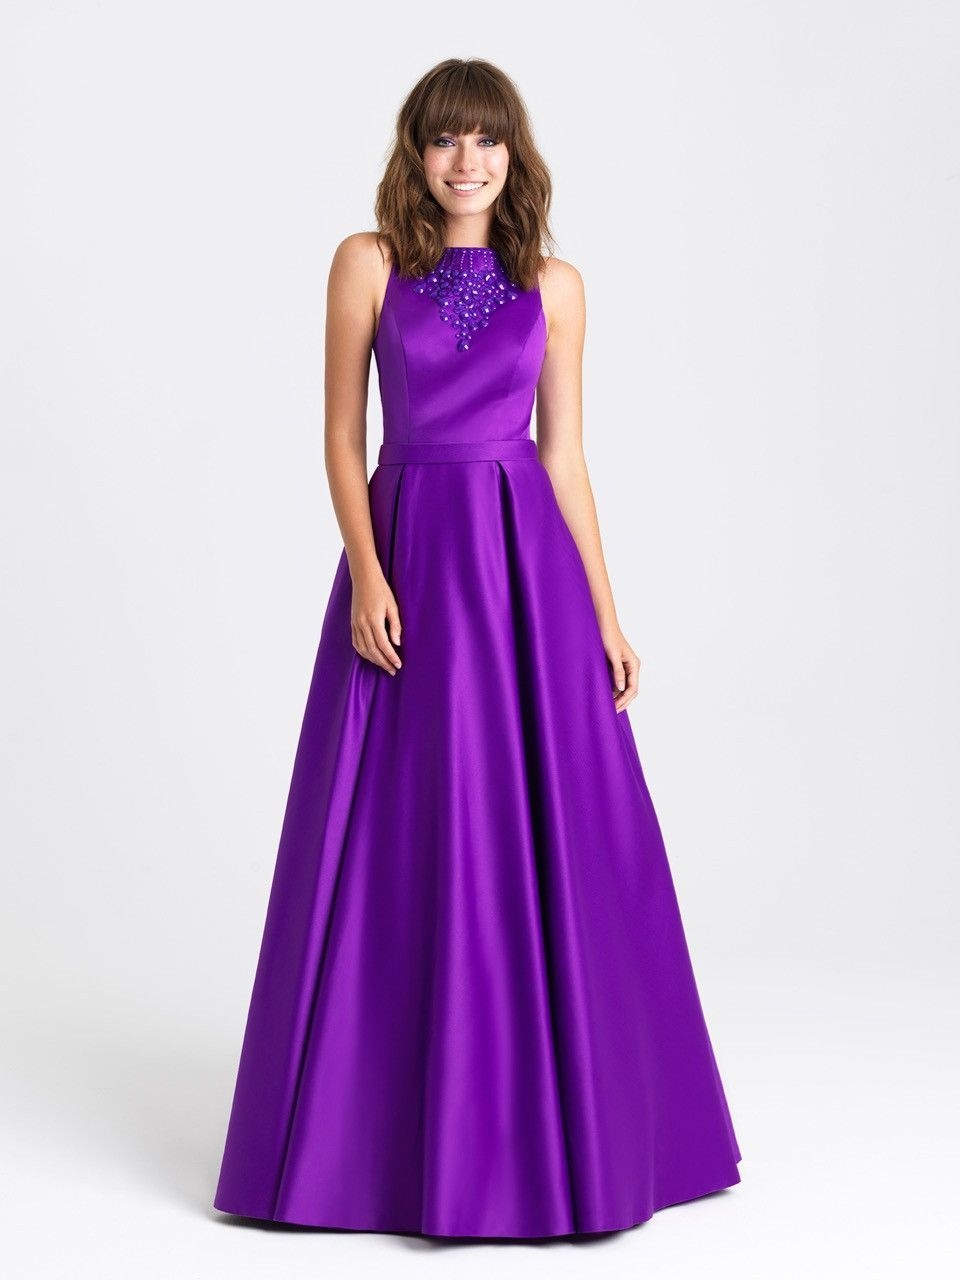 Capture every eye in this timeless satin gown. Perfect for prom ...